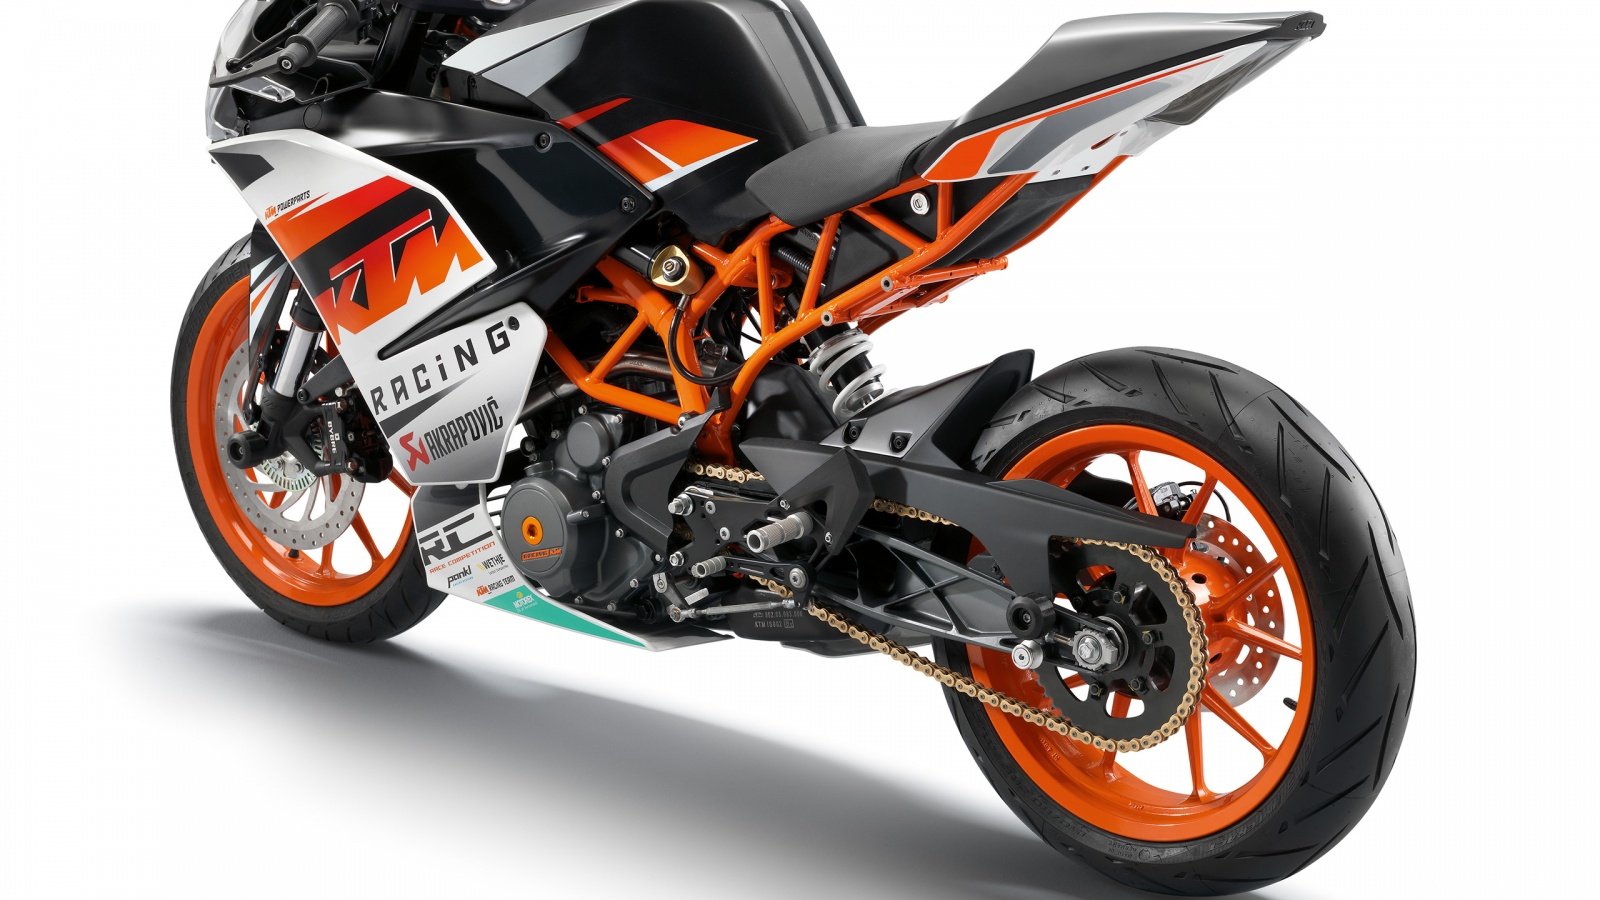 KTM RC 390 Bike 2014 HD Wallpaper   iHD Wallpapers 1600x900